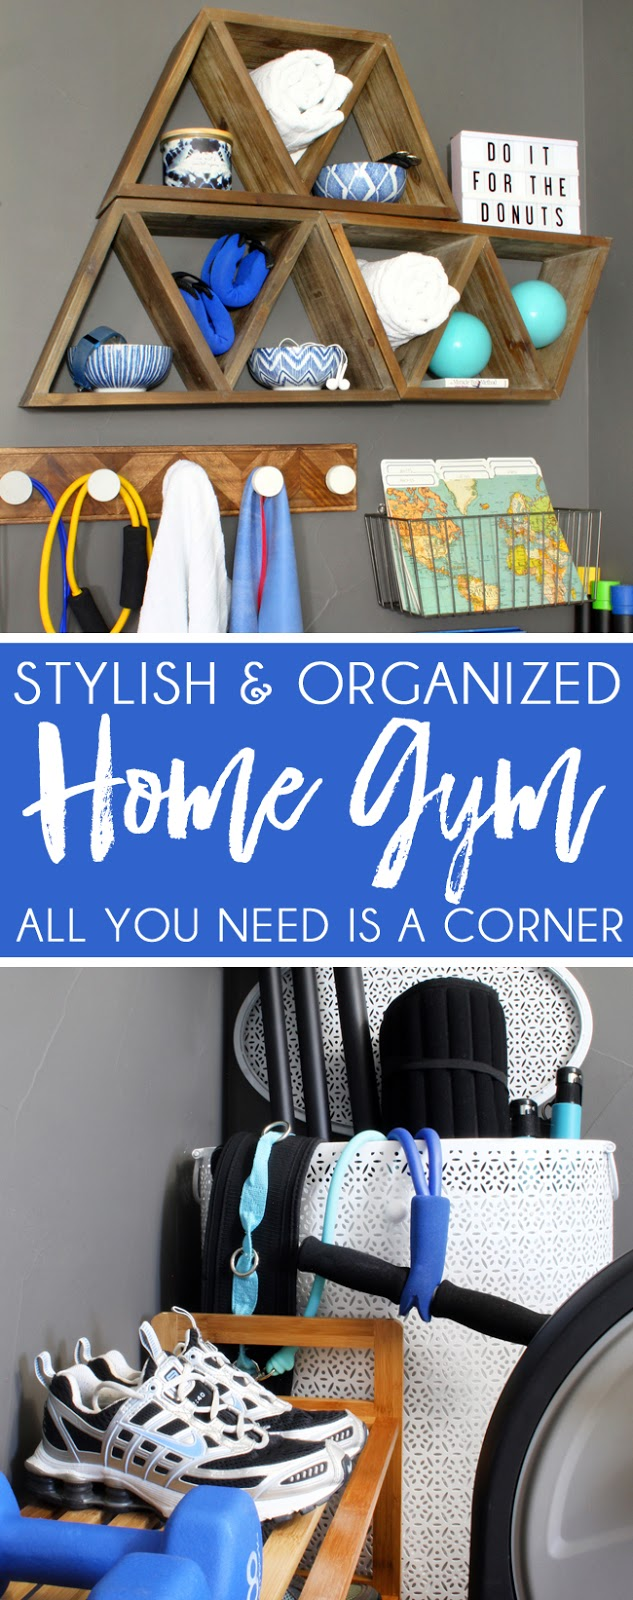 Home Gym Ideas Small Space Part - 29: Stylish And Organized Home Gym Ideas Small Space